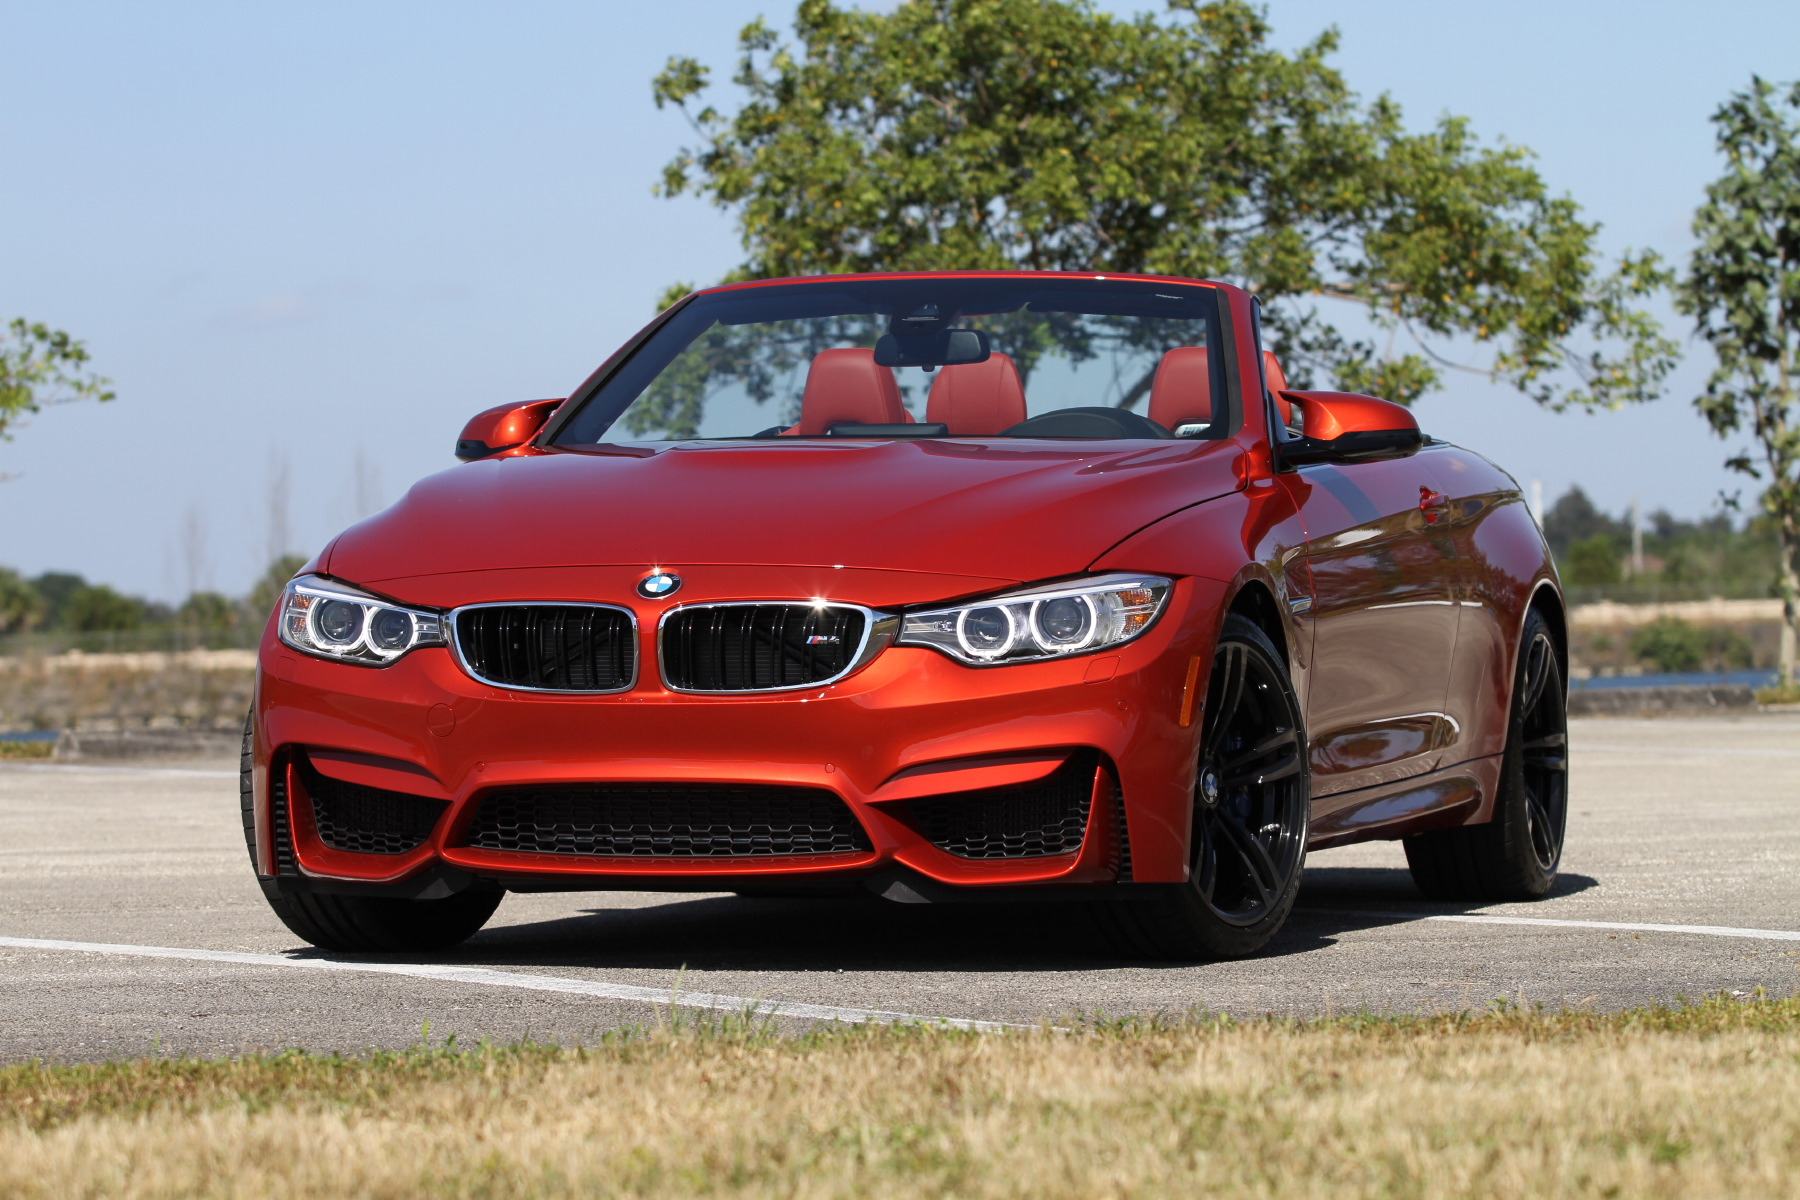 2015 bmw m4 convertible 1 4 mile 0 60 mph testing drag racing fast cars. Black Bedroom Furniture Sets. Home Design Ideas